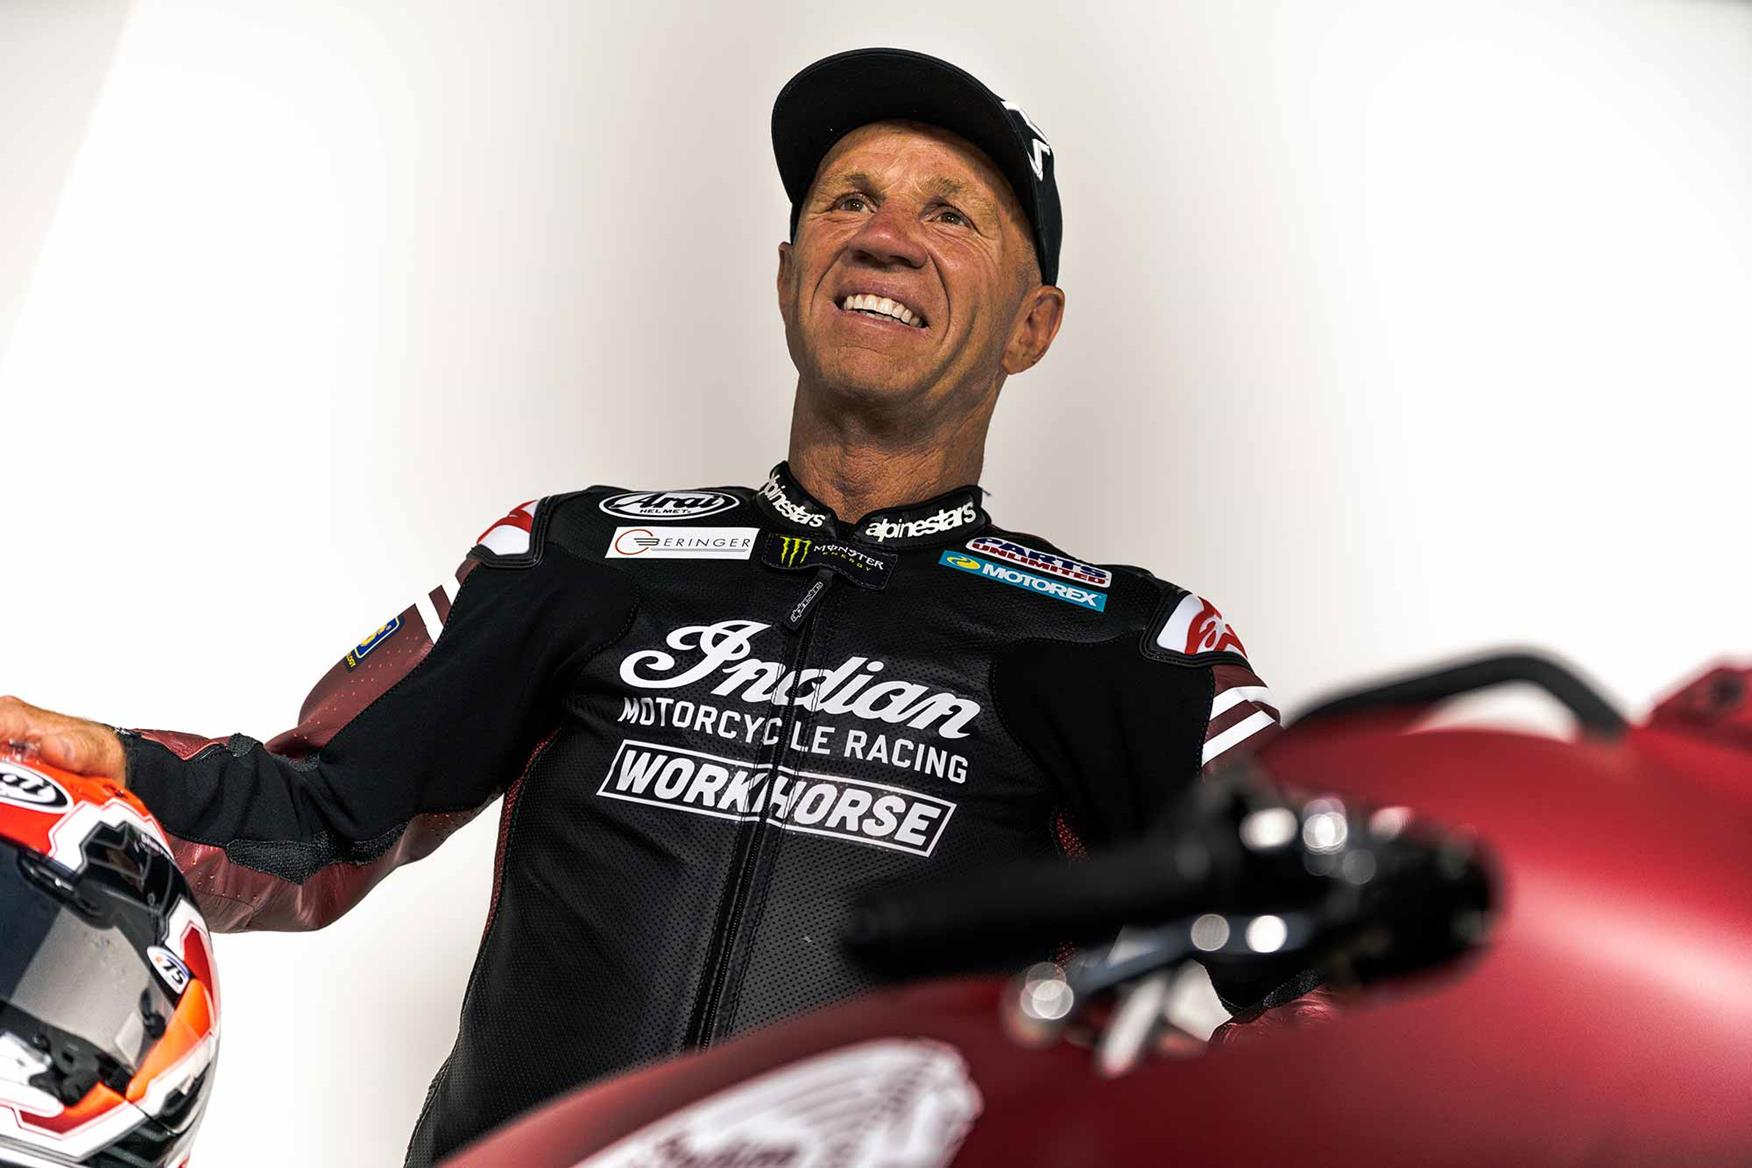 Randy Mamola will race the bike